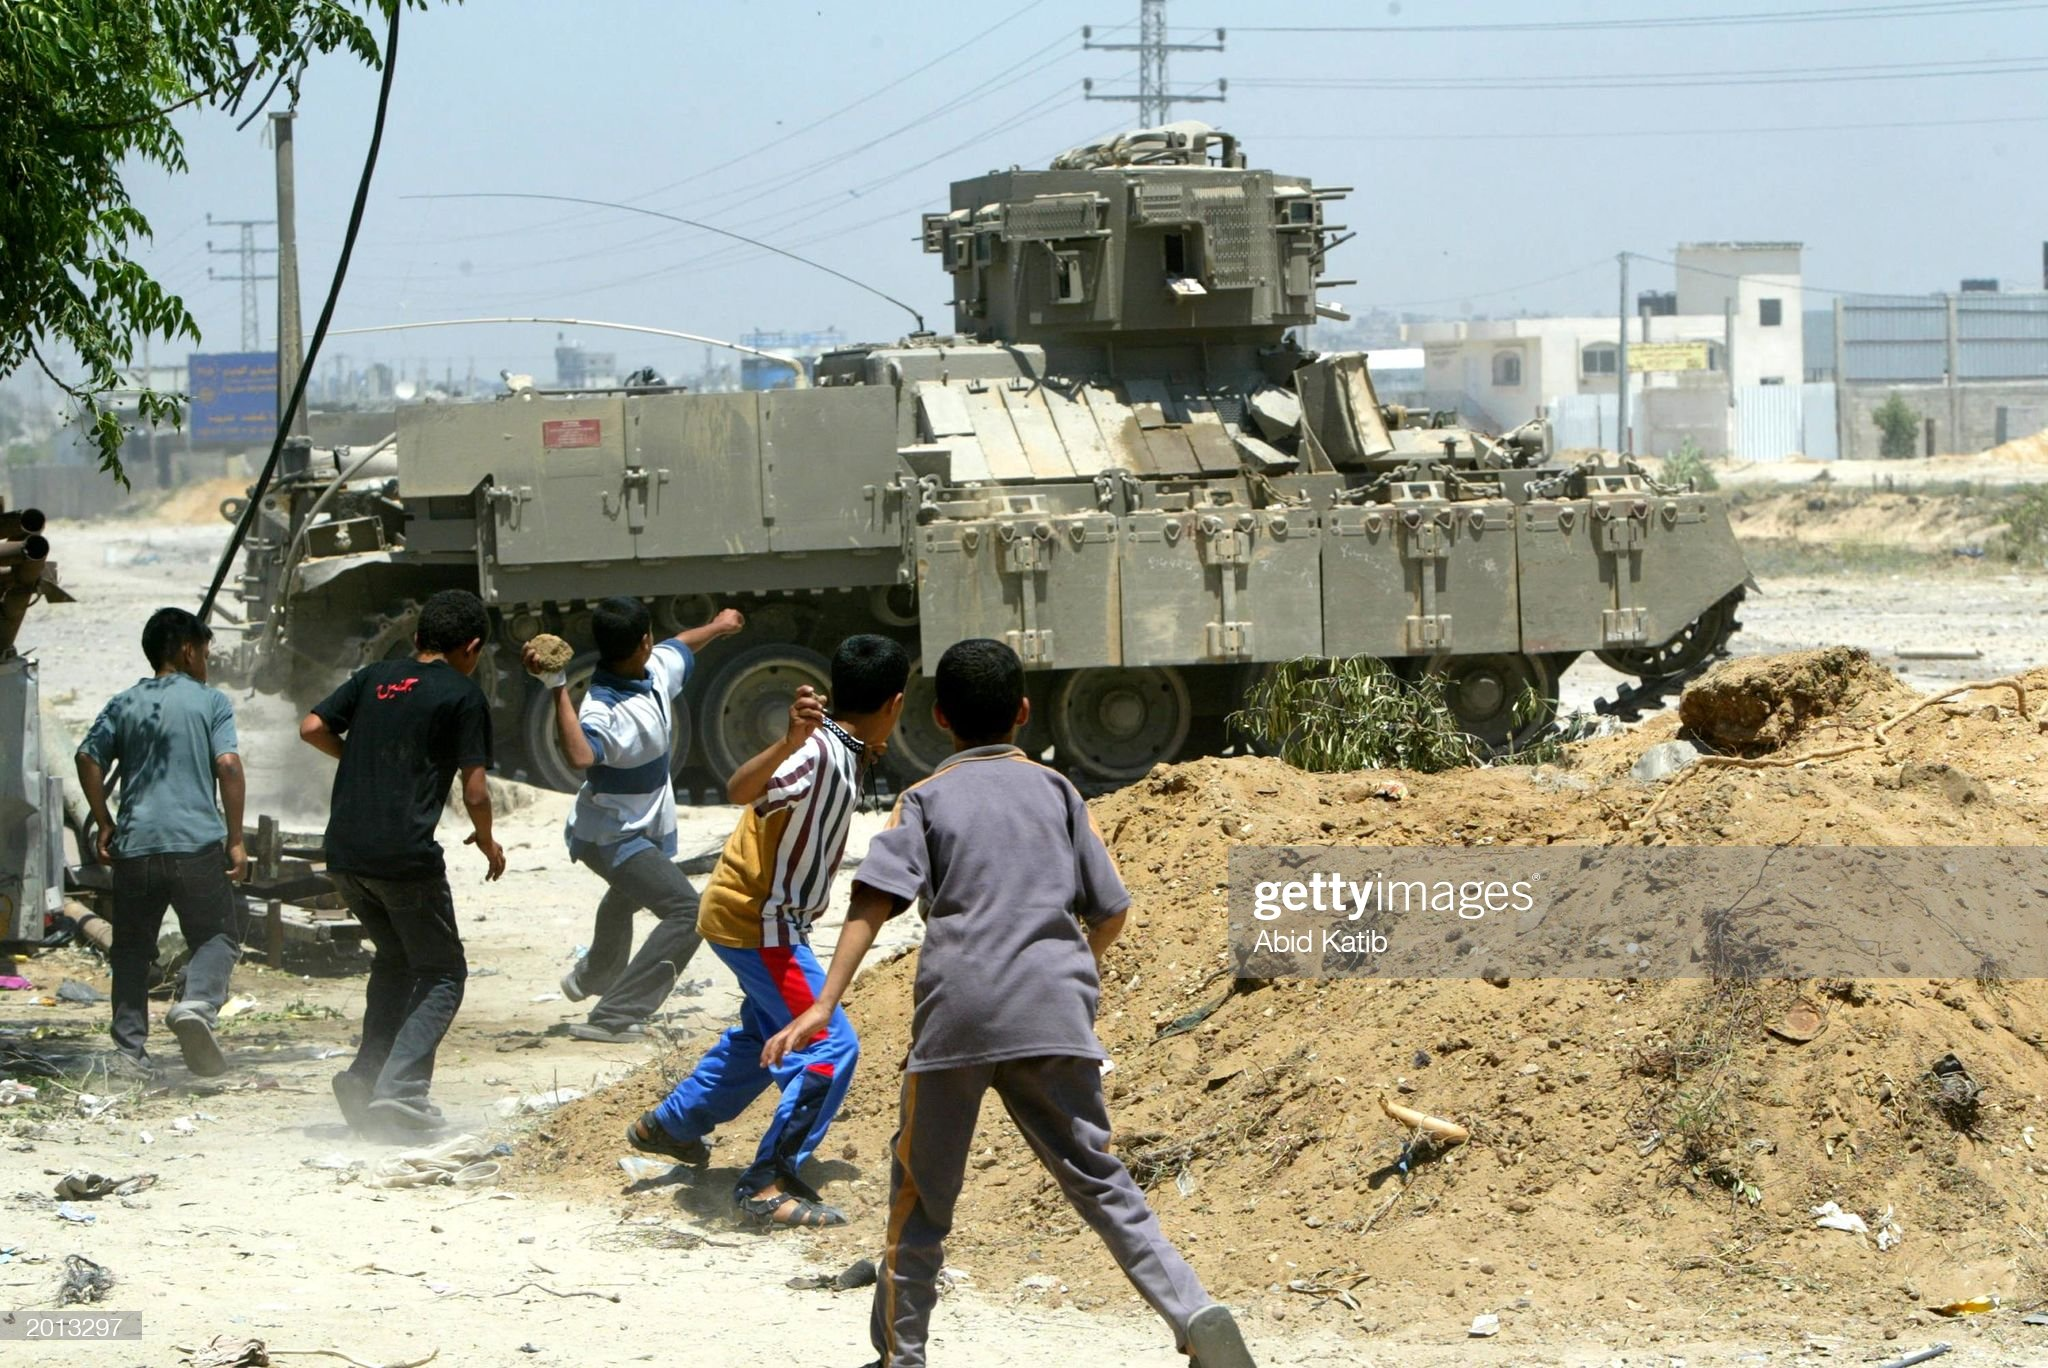 https://media.gettyimages.com/photos/palestinian-boys-throw-stones-at-an-israeli-tank-during-a-clash-may-picture-id2013297?s=2048x2048